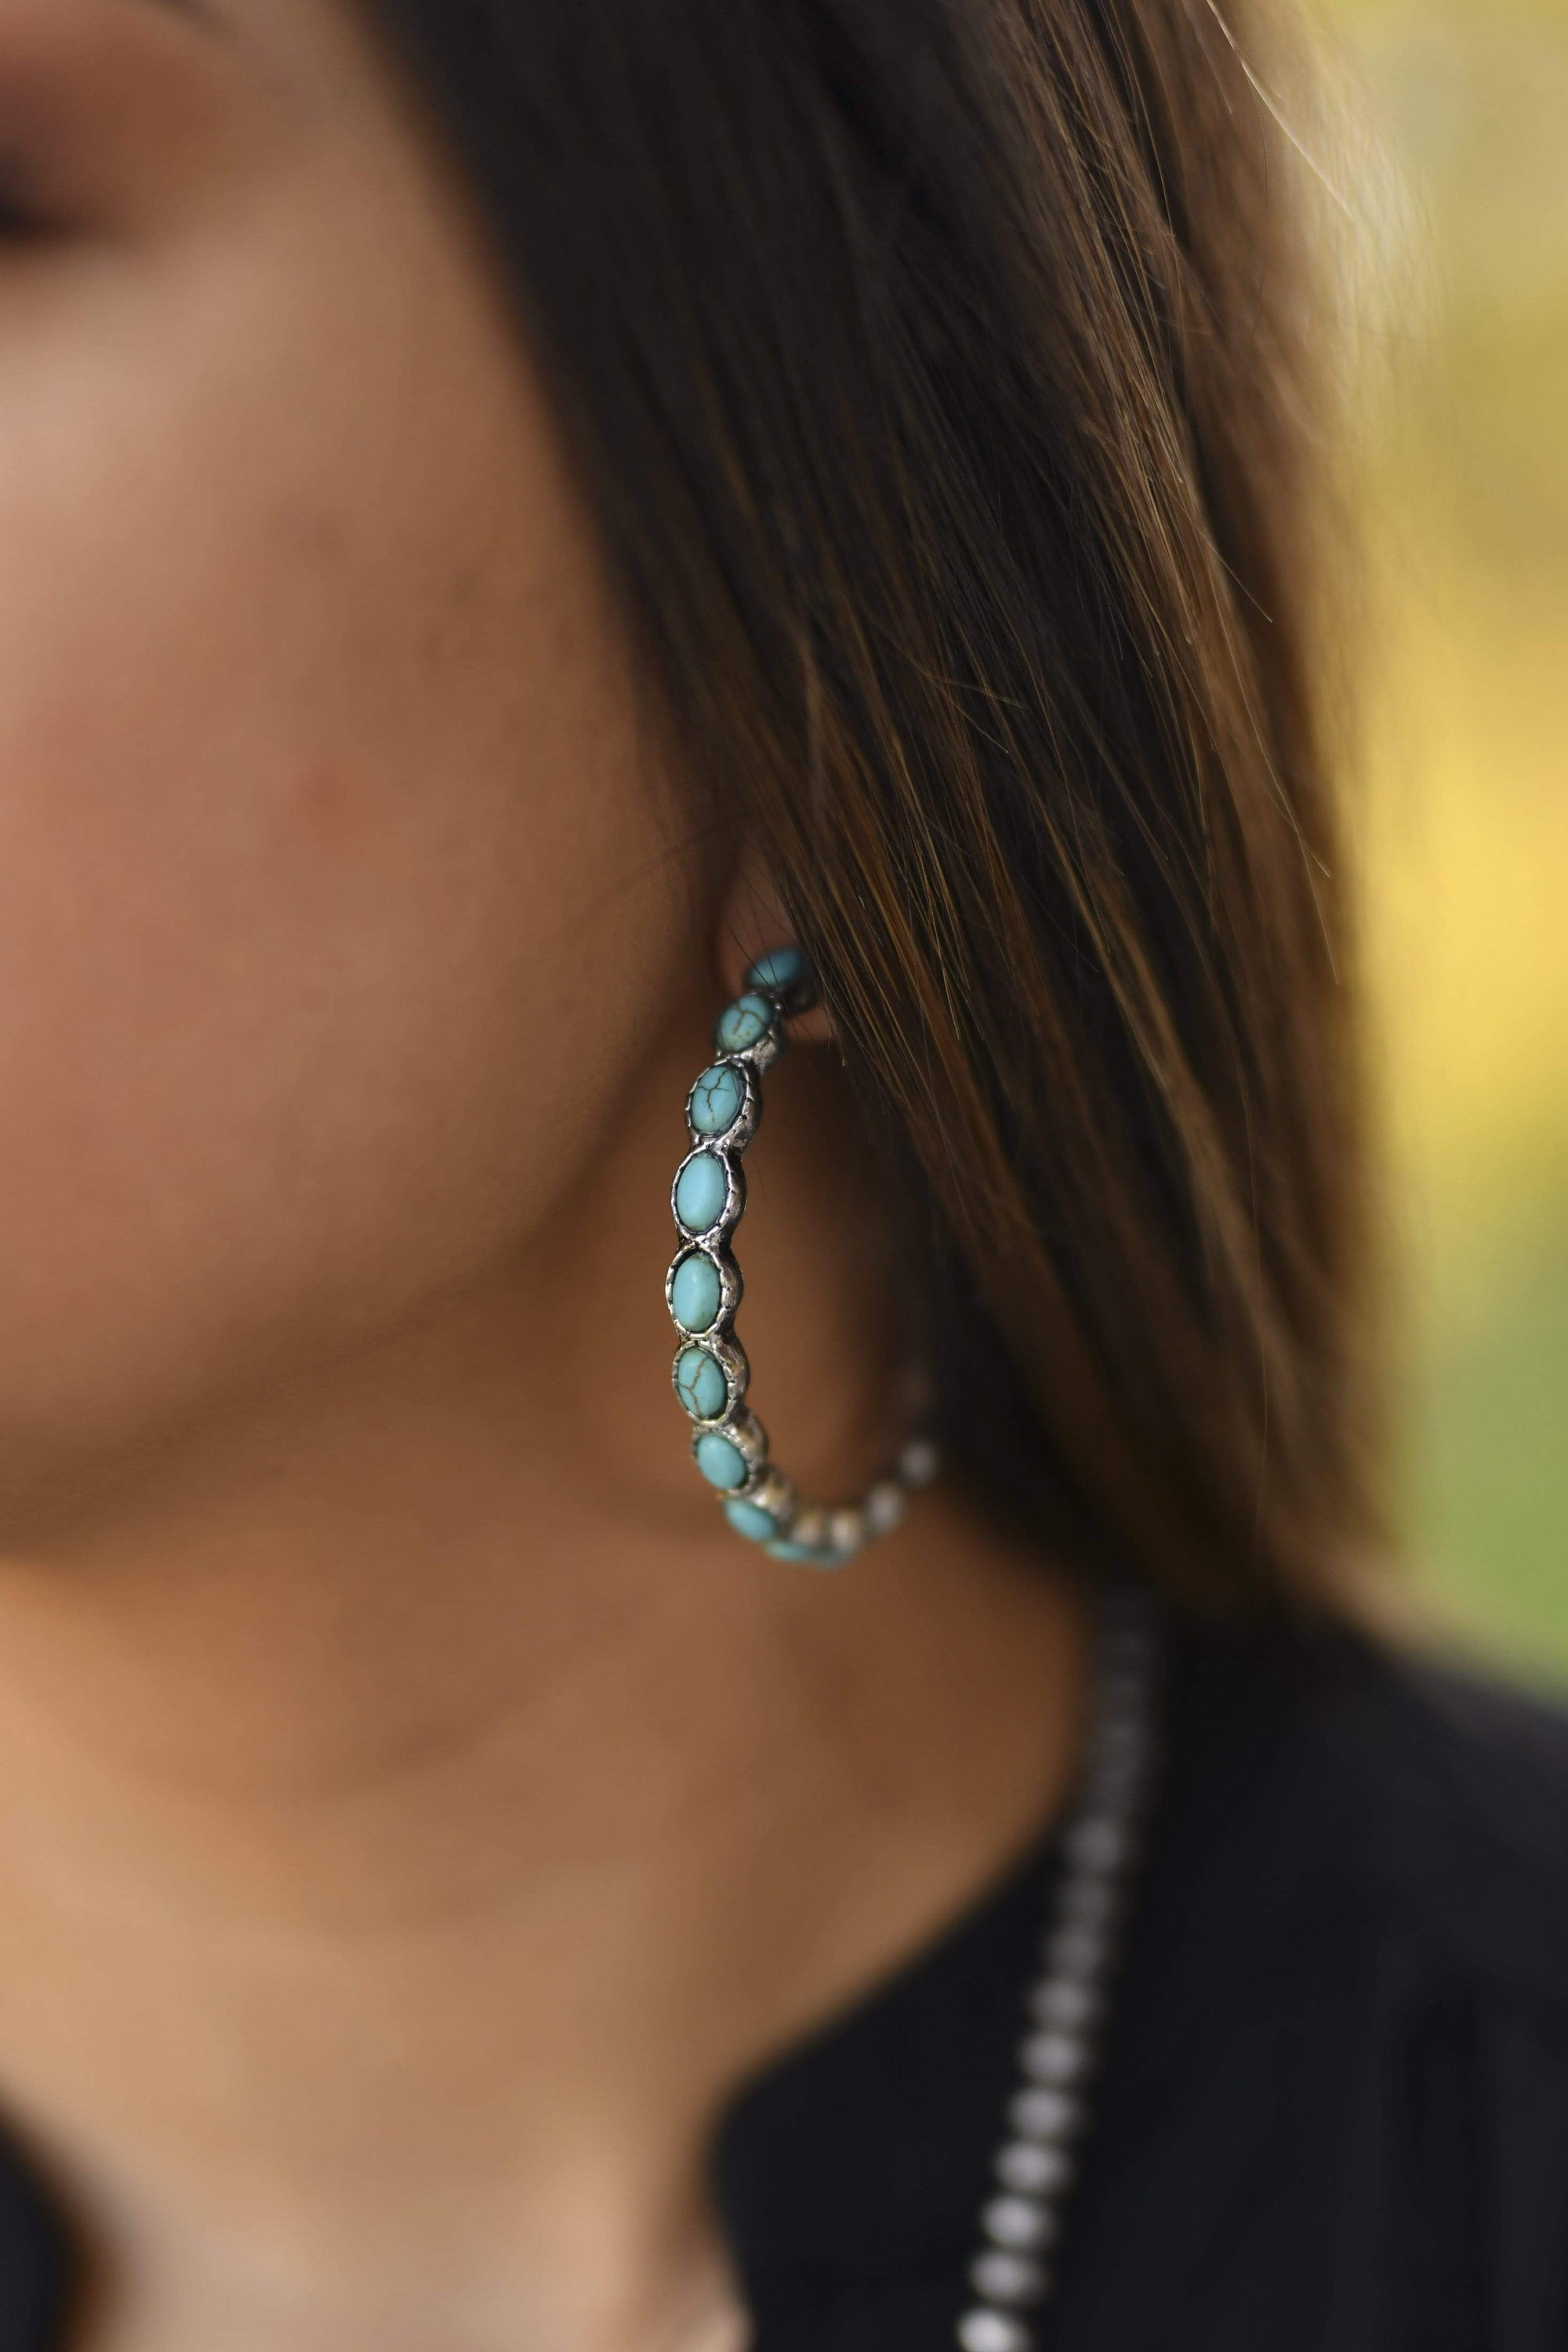 Accessorize In Style Fashion Earrings Fashion Turquoise Hoops - Oval